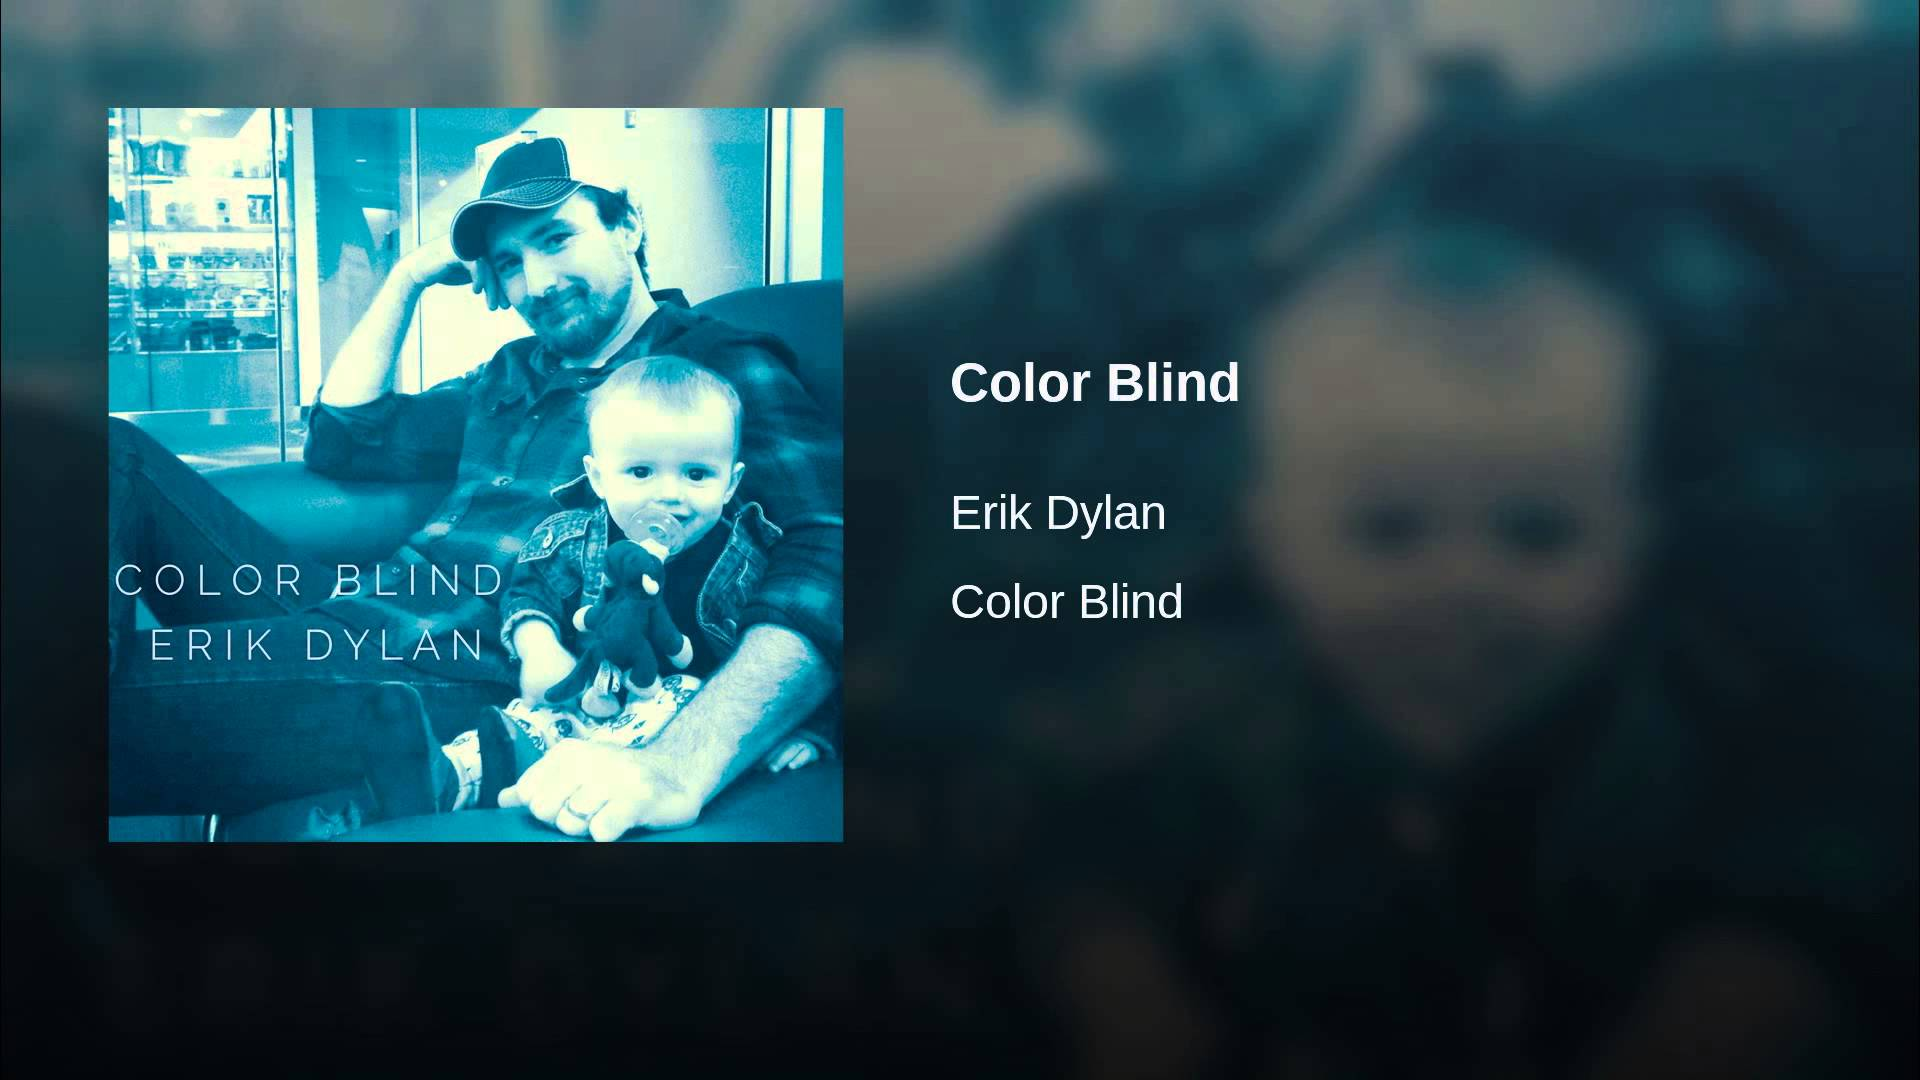 Erik Dylan digs deep for meaningful songs, sets sights on major cuts